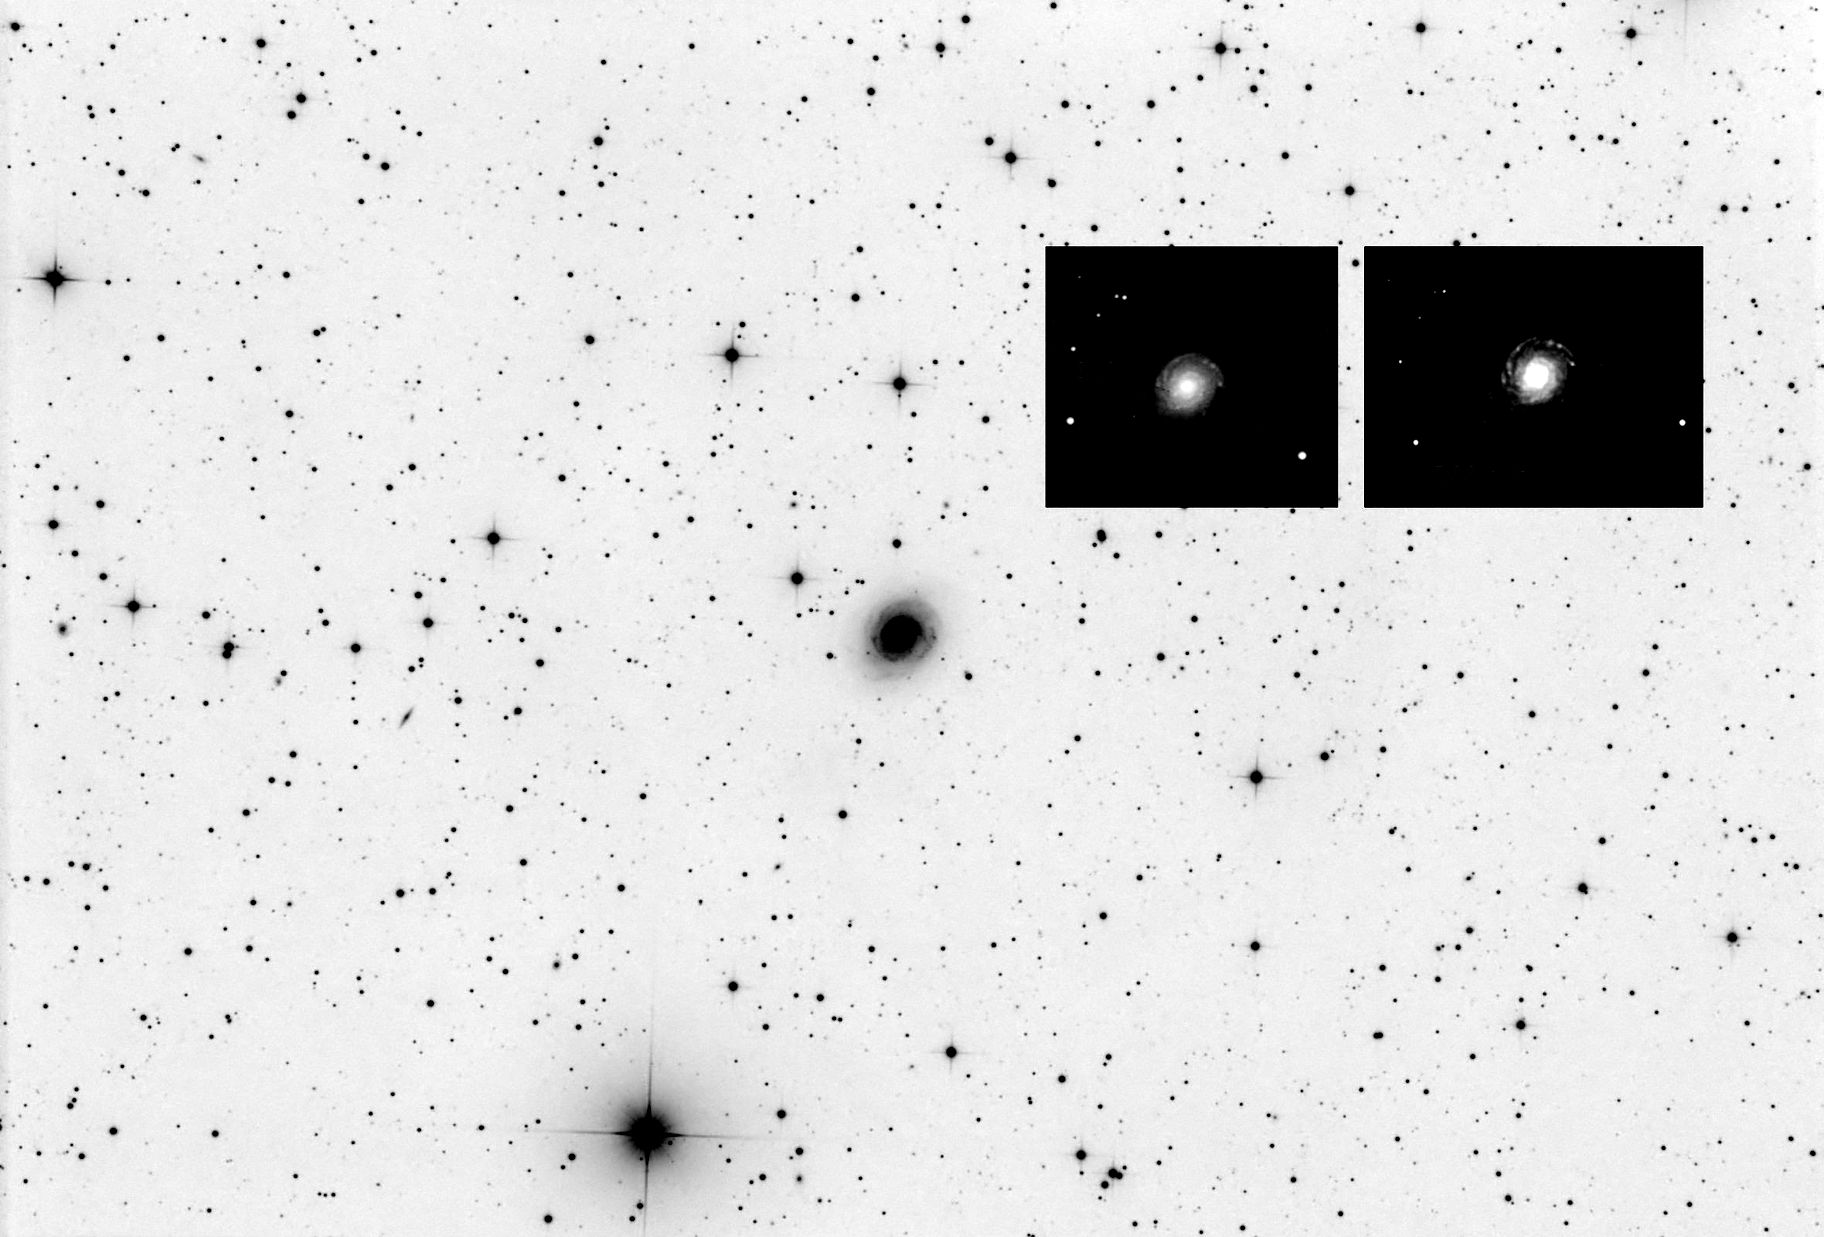 SN 2021do in NGC 3147,                                CCDMike